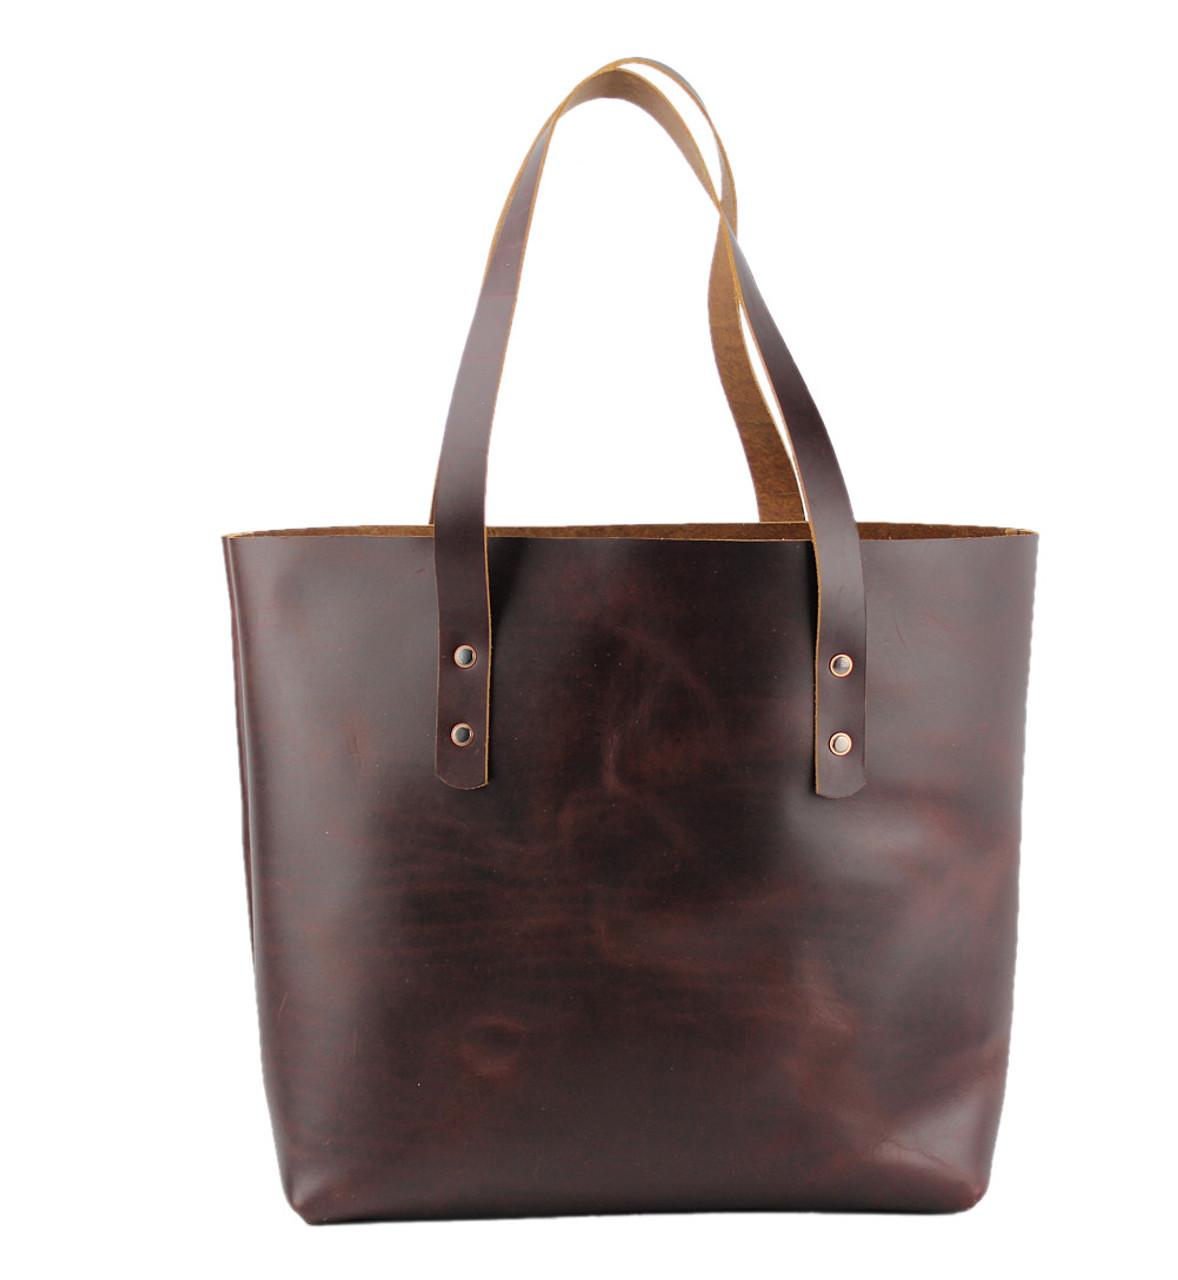 Tan Lincoln Tote Leather Handles /& Hardware Kit